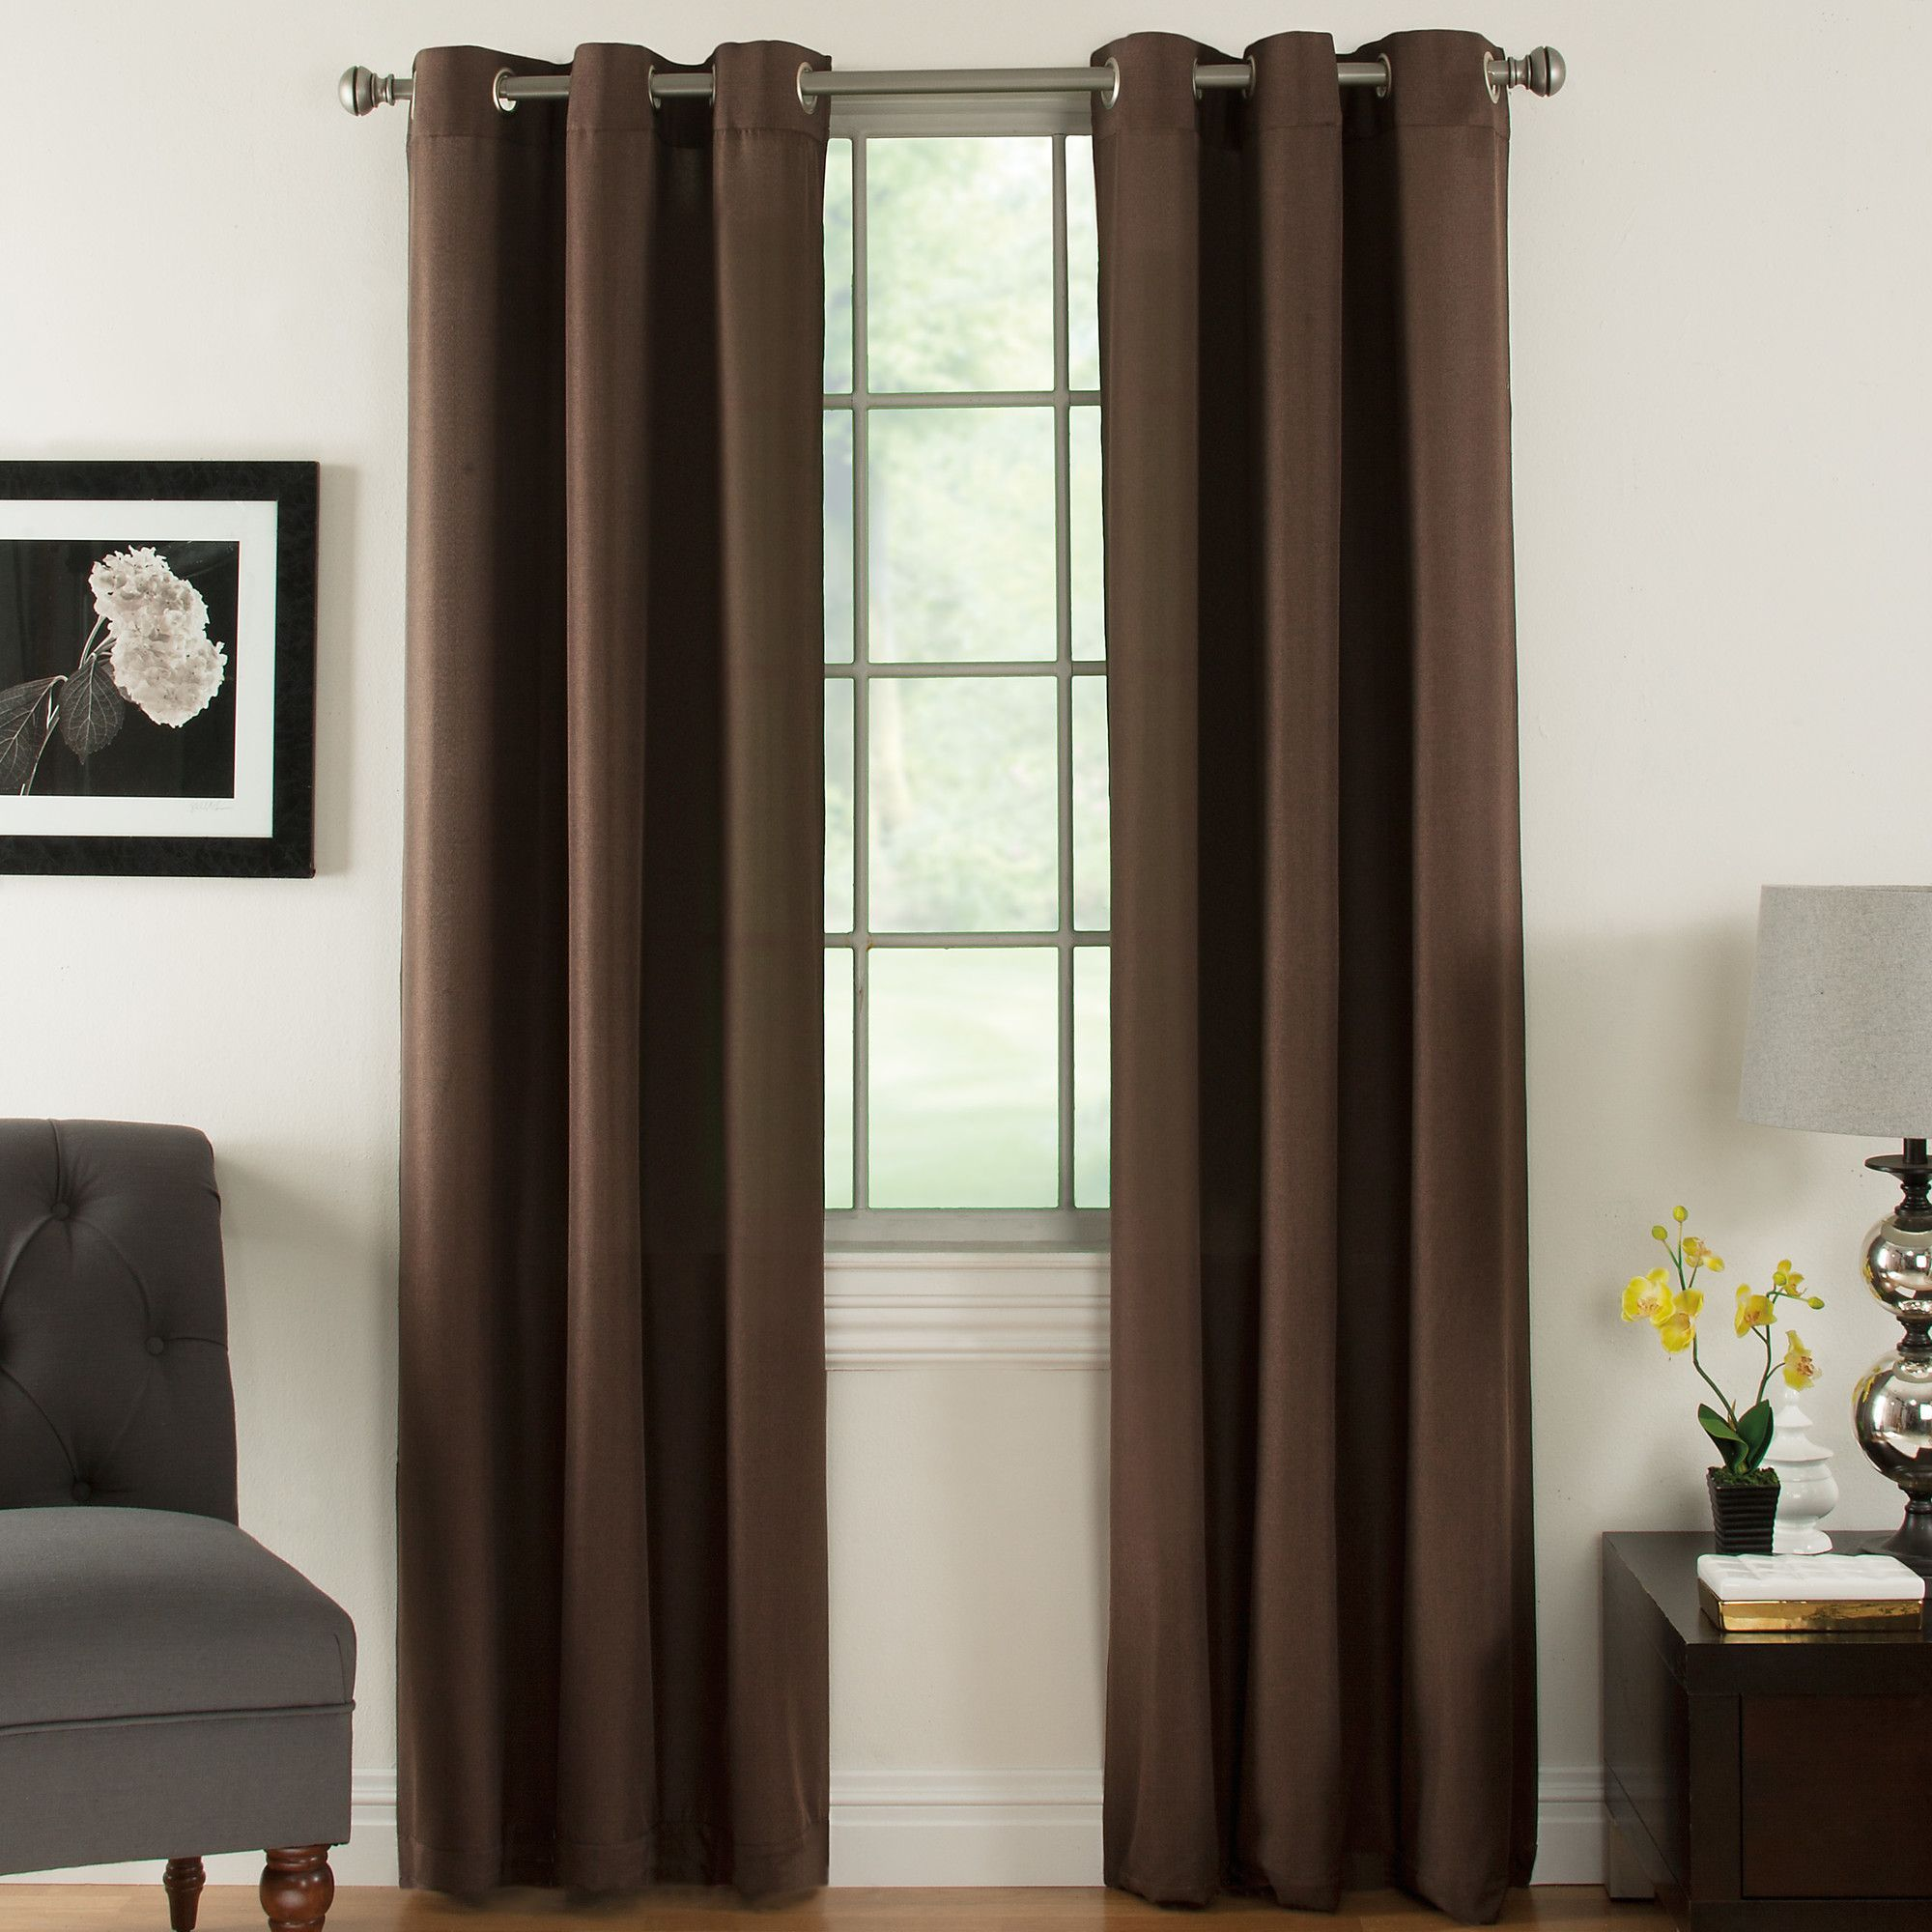 Indooroutdoor thermal curtain panel products pinterest products